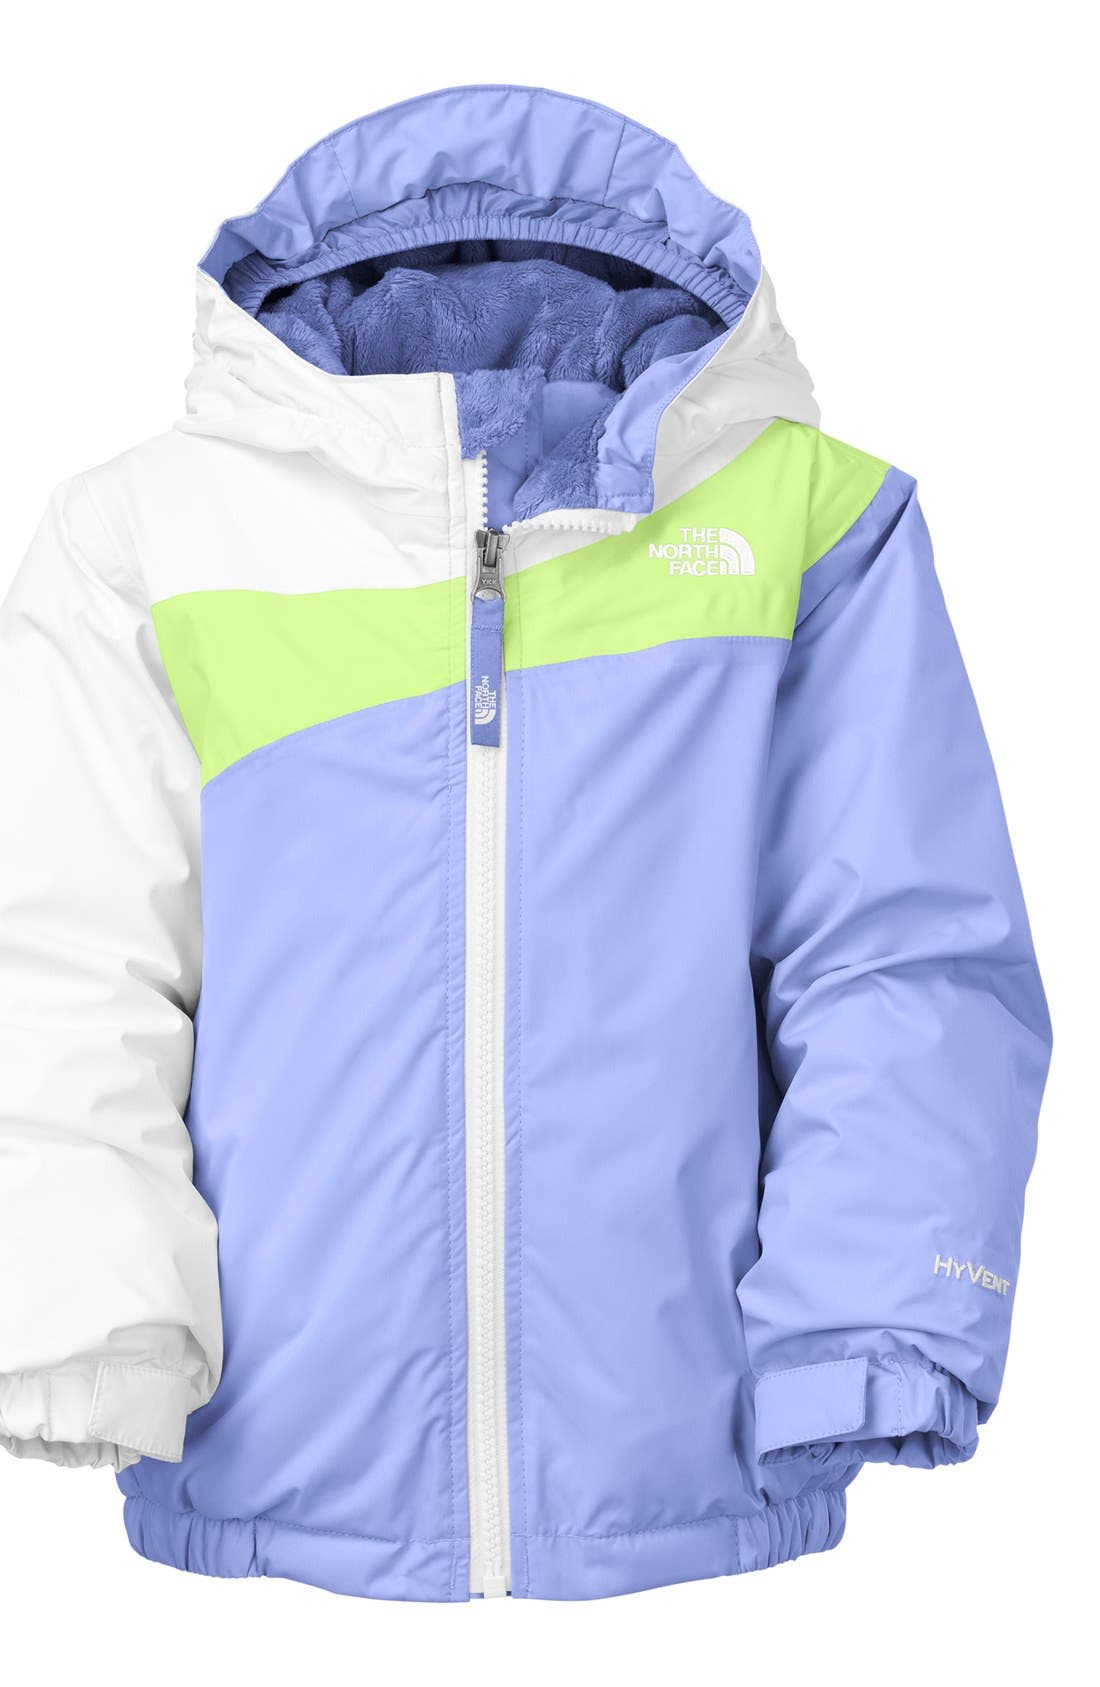 Alternate Image 1 Selected - The North Face 'Poquito' Insulated Jacket (Toddler Girls)